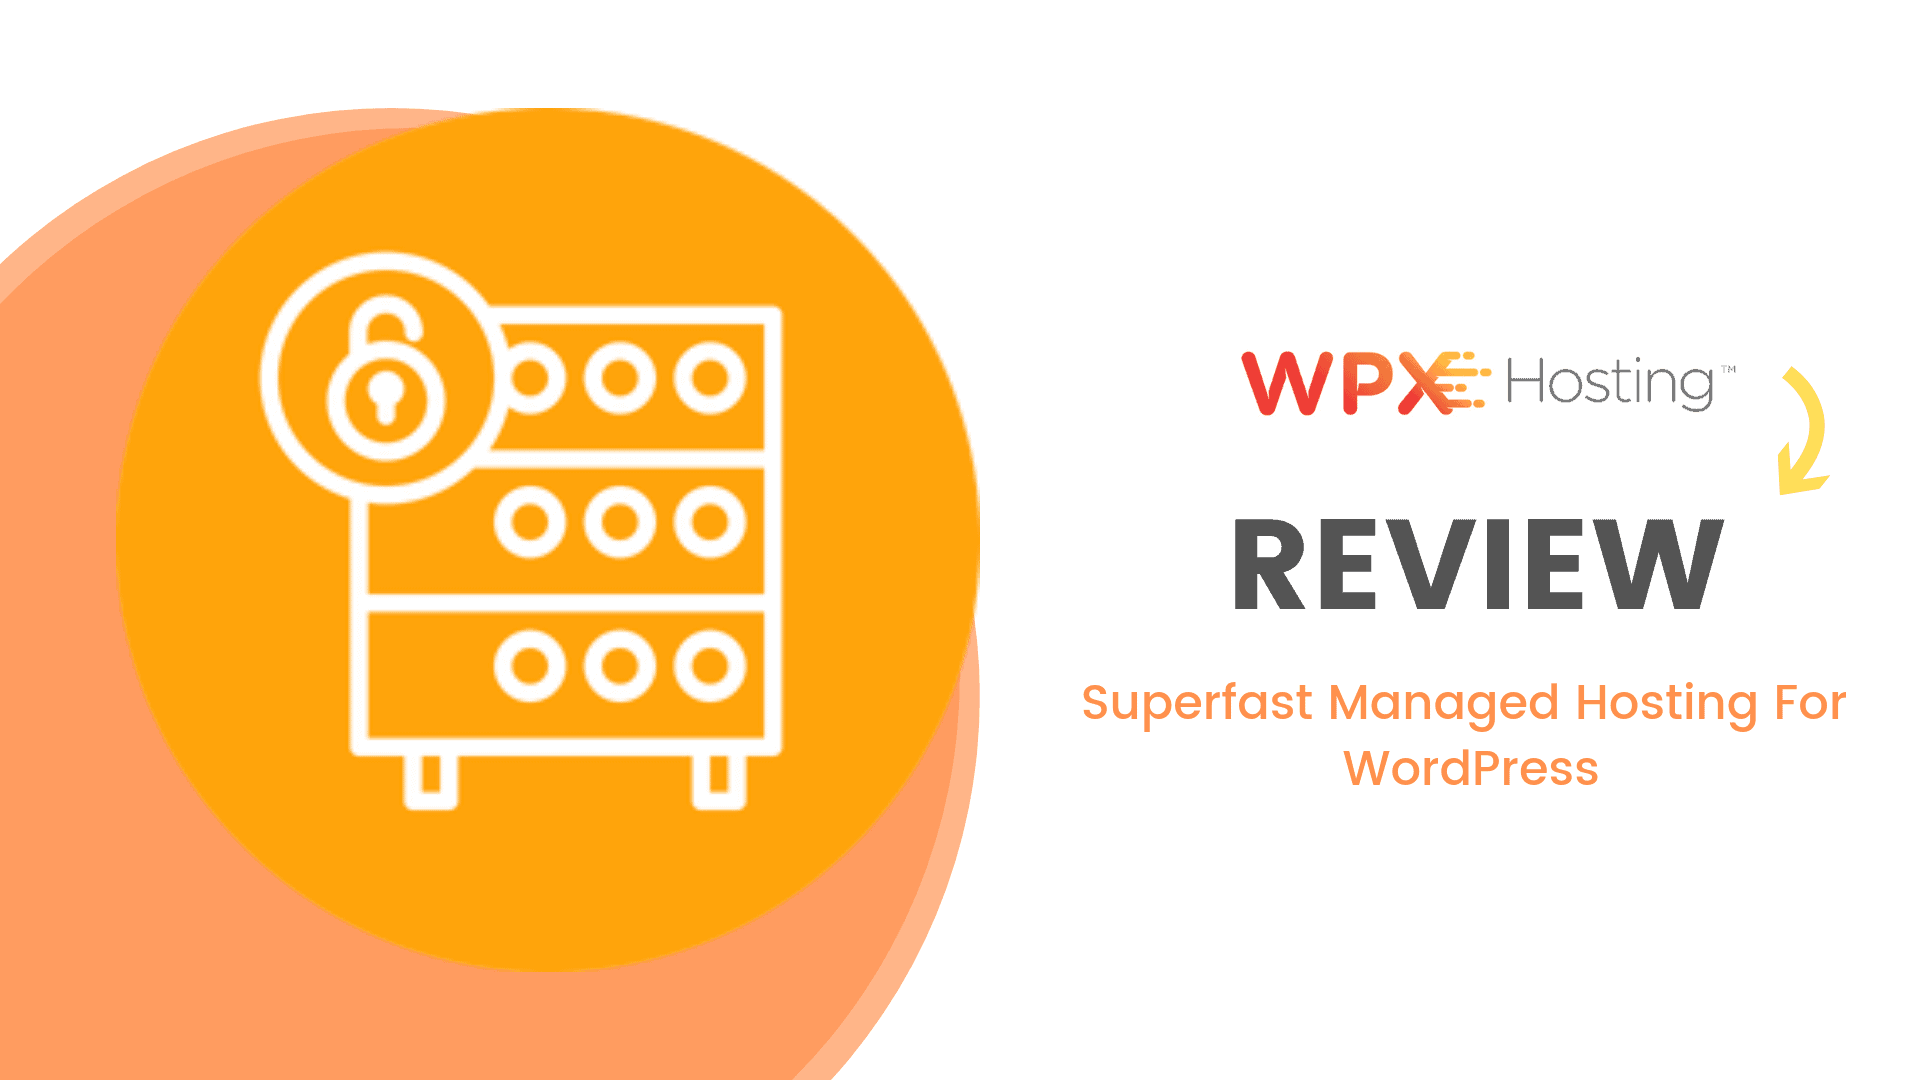 WPX Hosting Review 2019